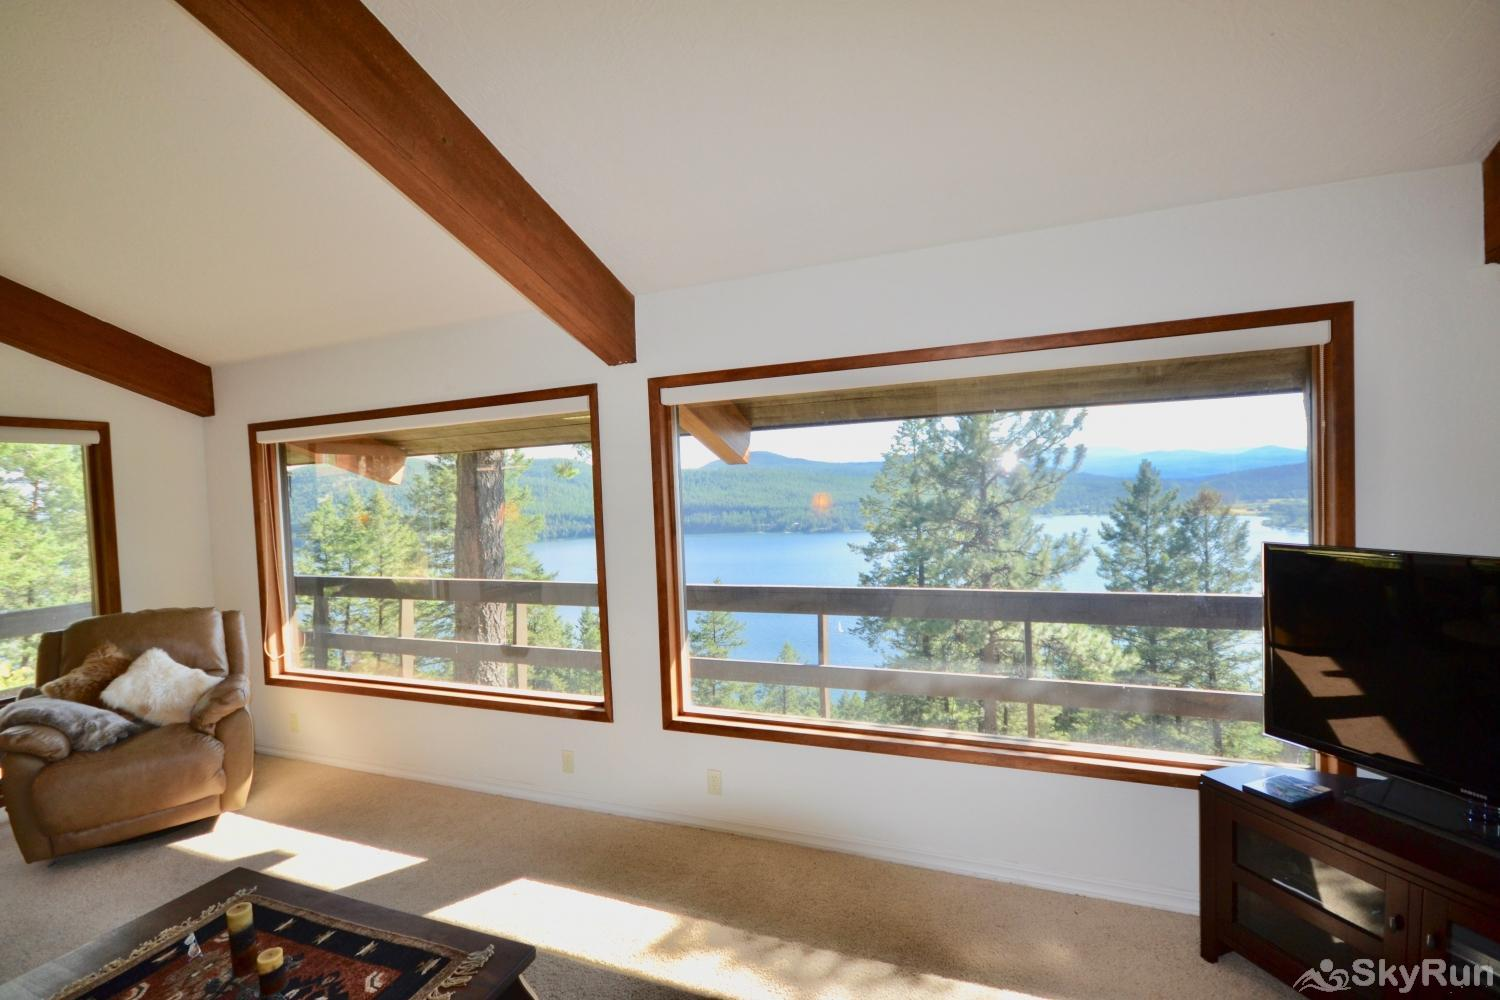 Lodgepole Ridge Cottage Two pictures windows to enjoy the fantastic views of Whitefish Lake.